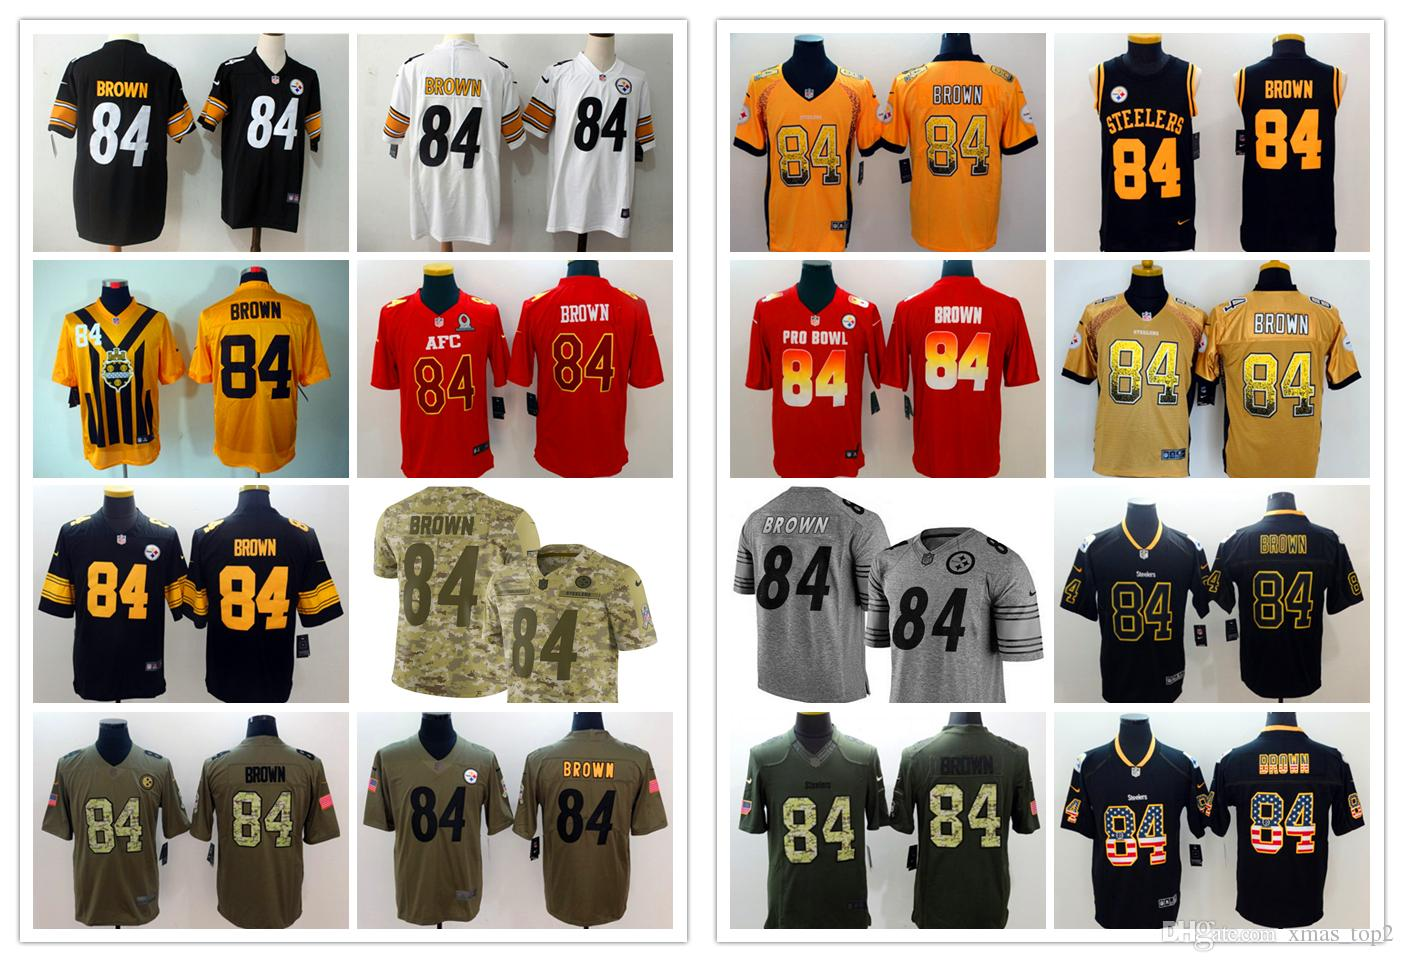 0c9e451c2 ... sale 2019 new mens 84 antonio brown jersey pittsburgh steelers football  jerseys 100 stitched embroidery antonio